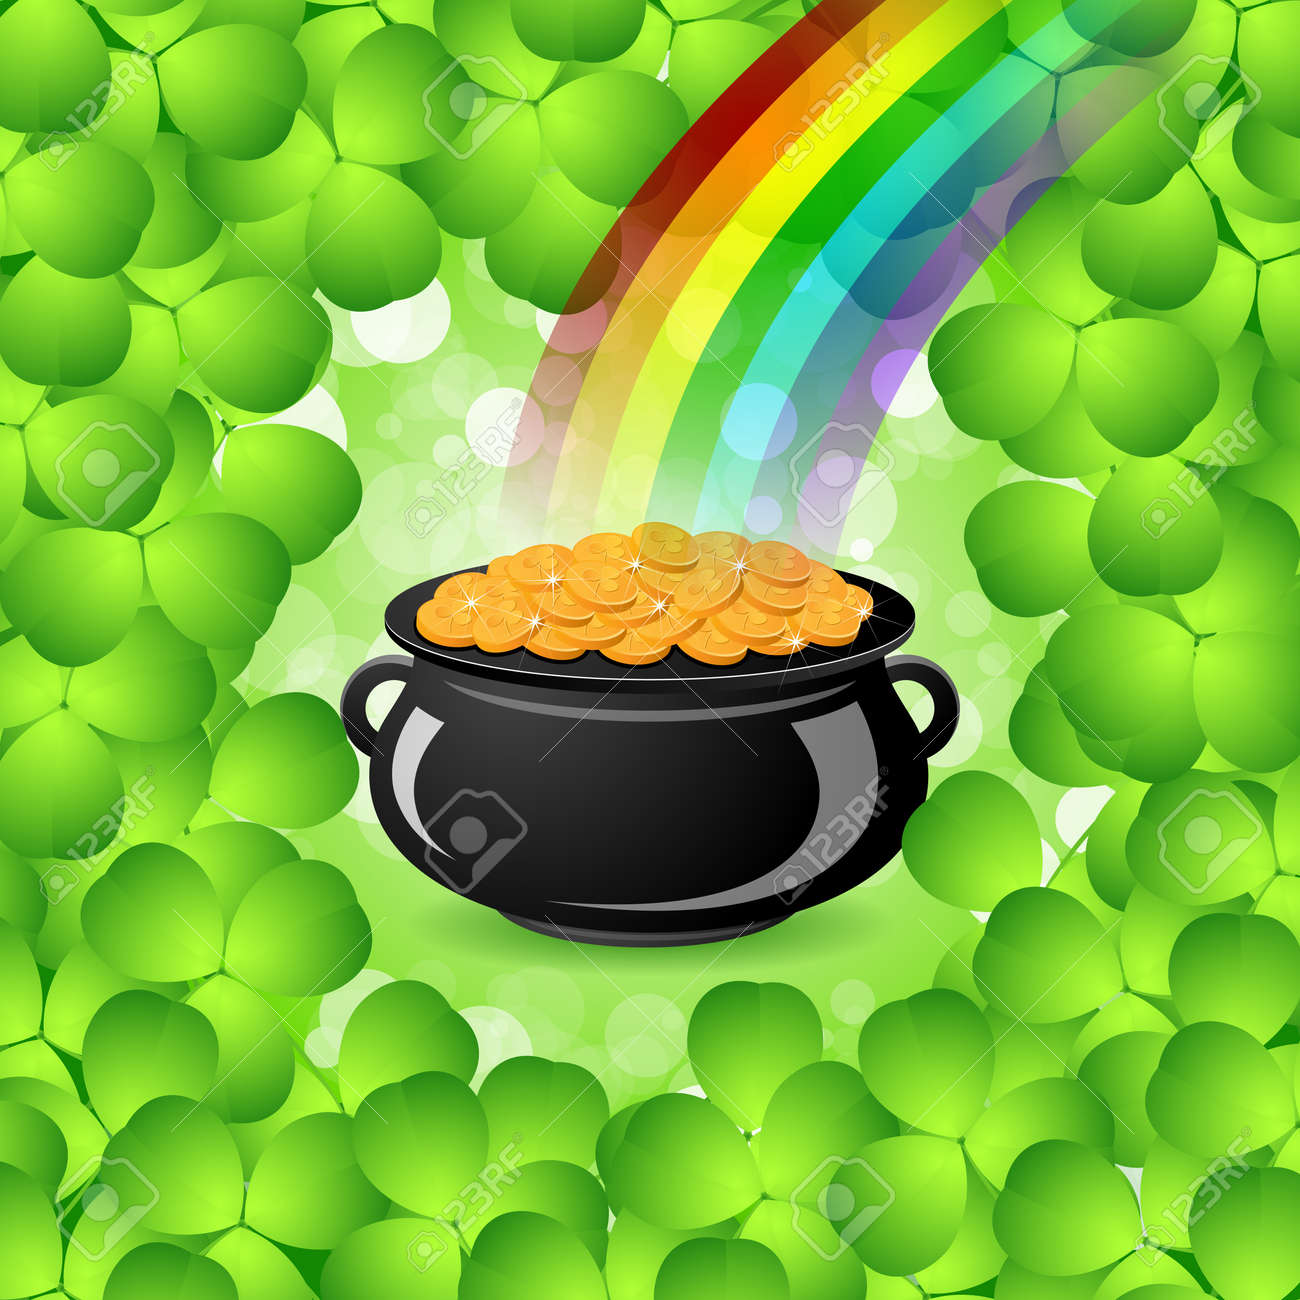 St. Patricks Day Cauldron with Gold Coins, Rainbow and Shamrock Stock Vector - 17971655